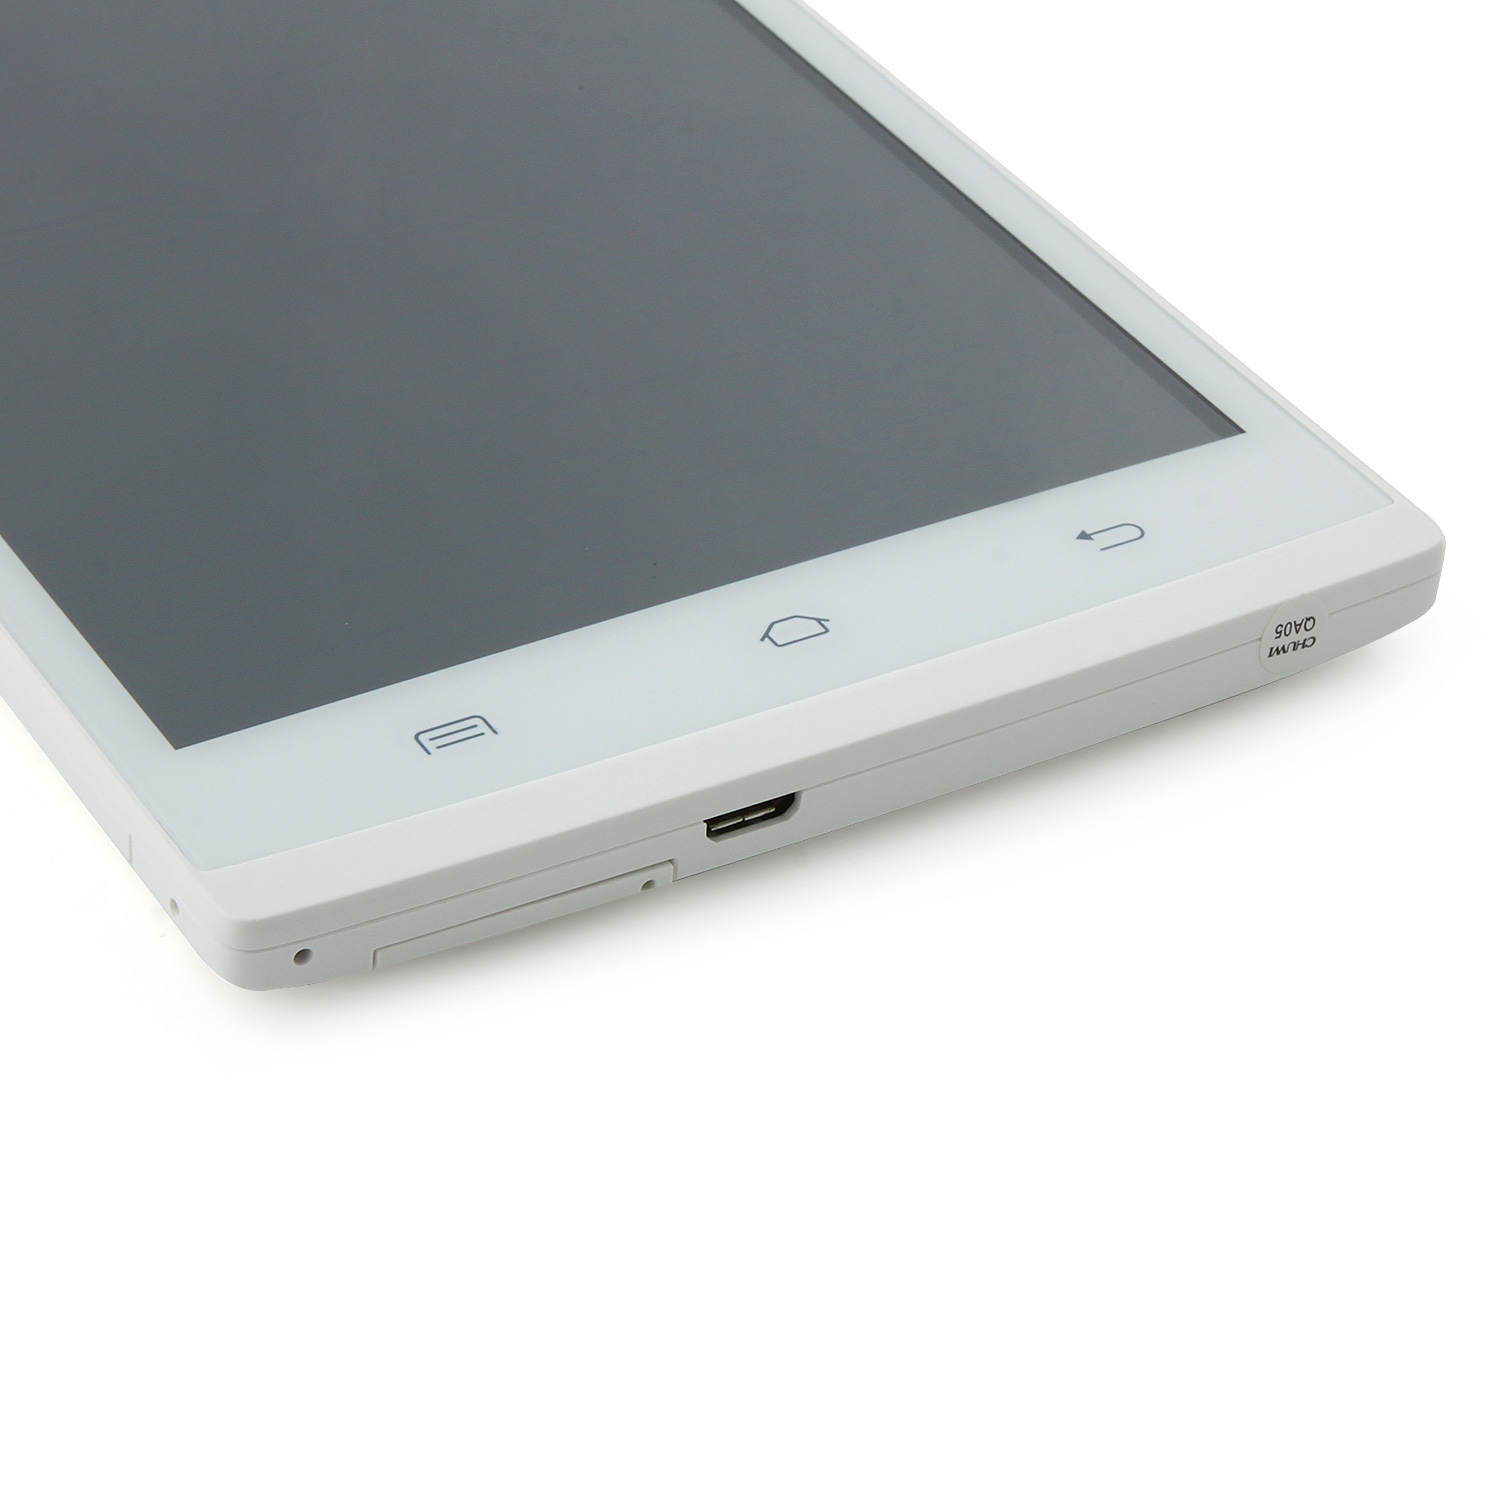 "CHUWI DX1 Tablet PC MTK8382 6.98"" Android 4.4 206° Free Rotation Camera 16GB 3G White"